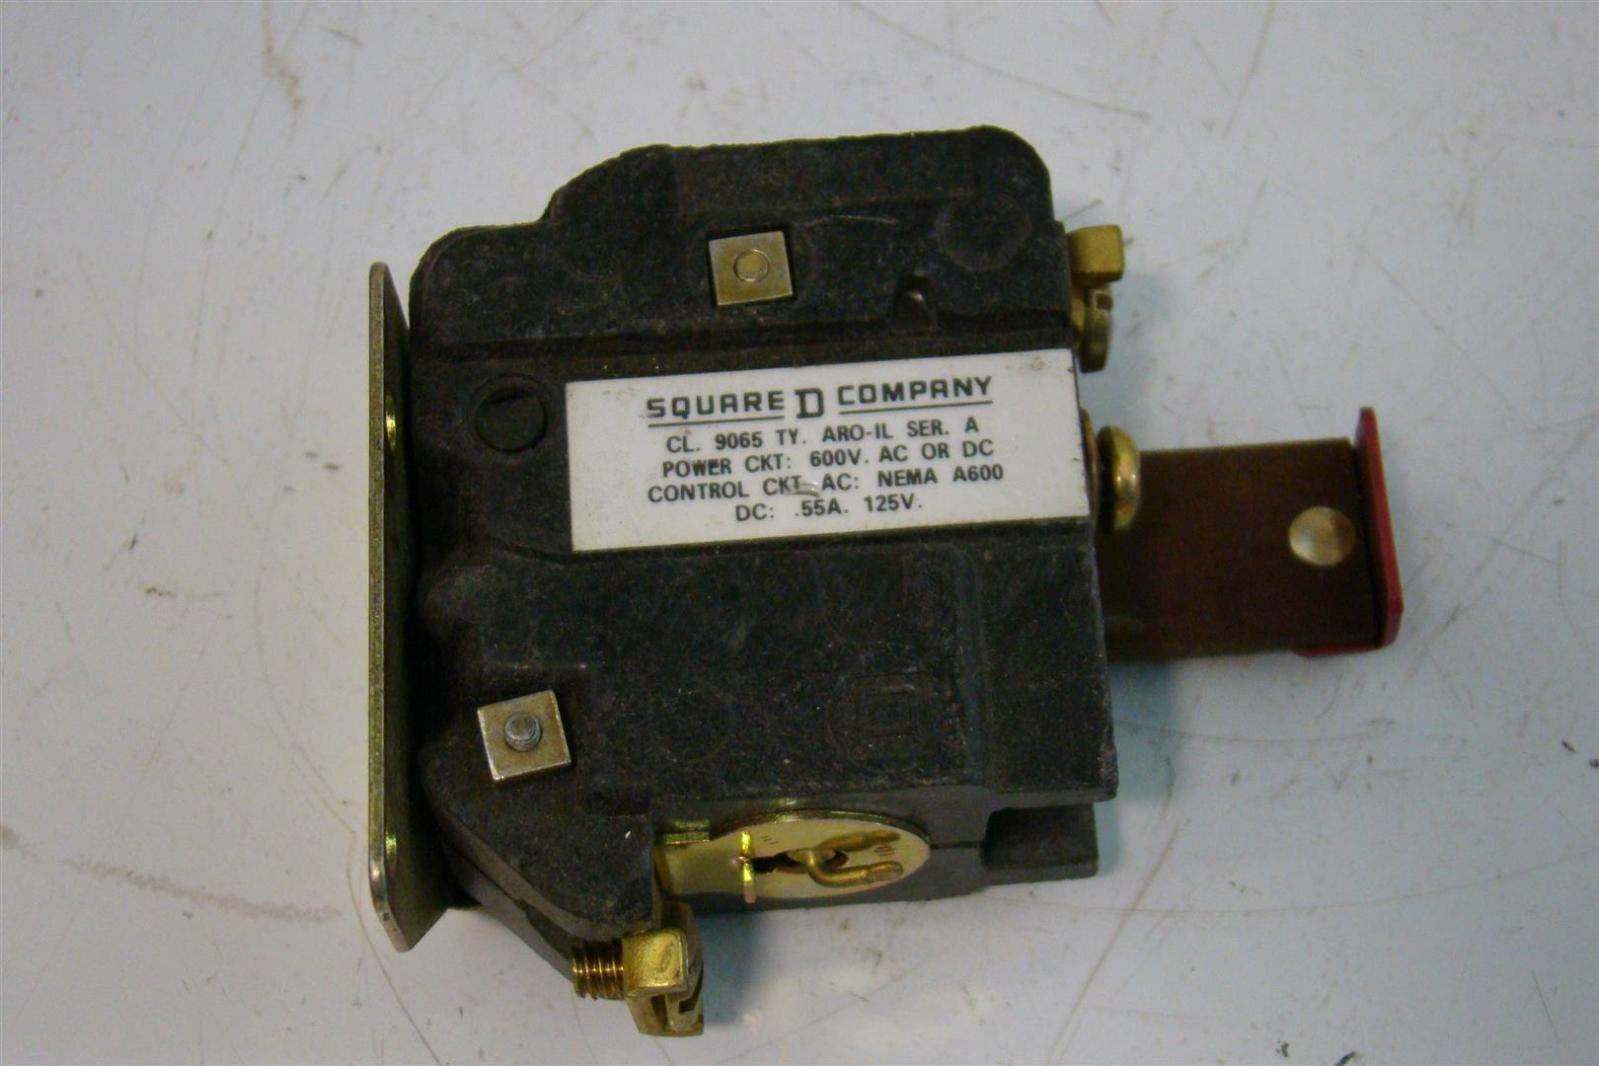 Square D Reset Switch 55A 125VDC 9065